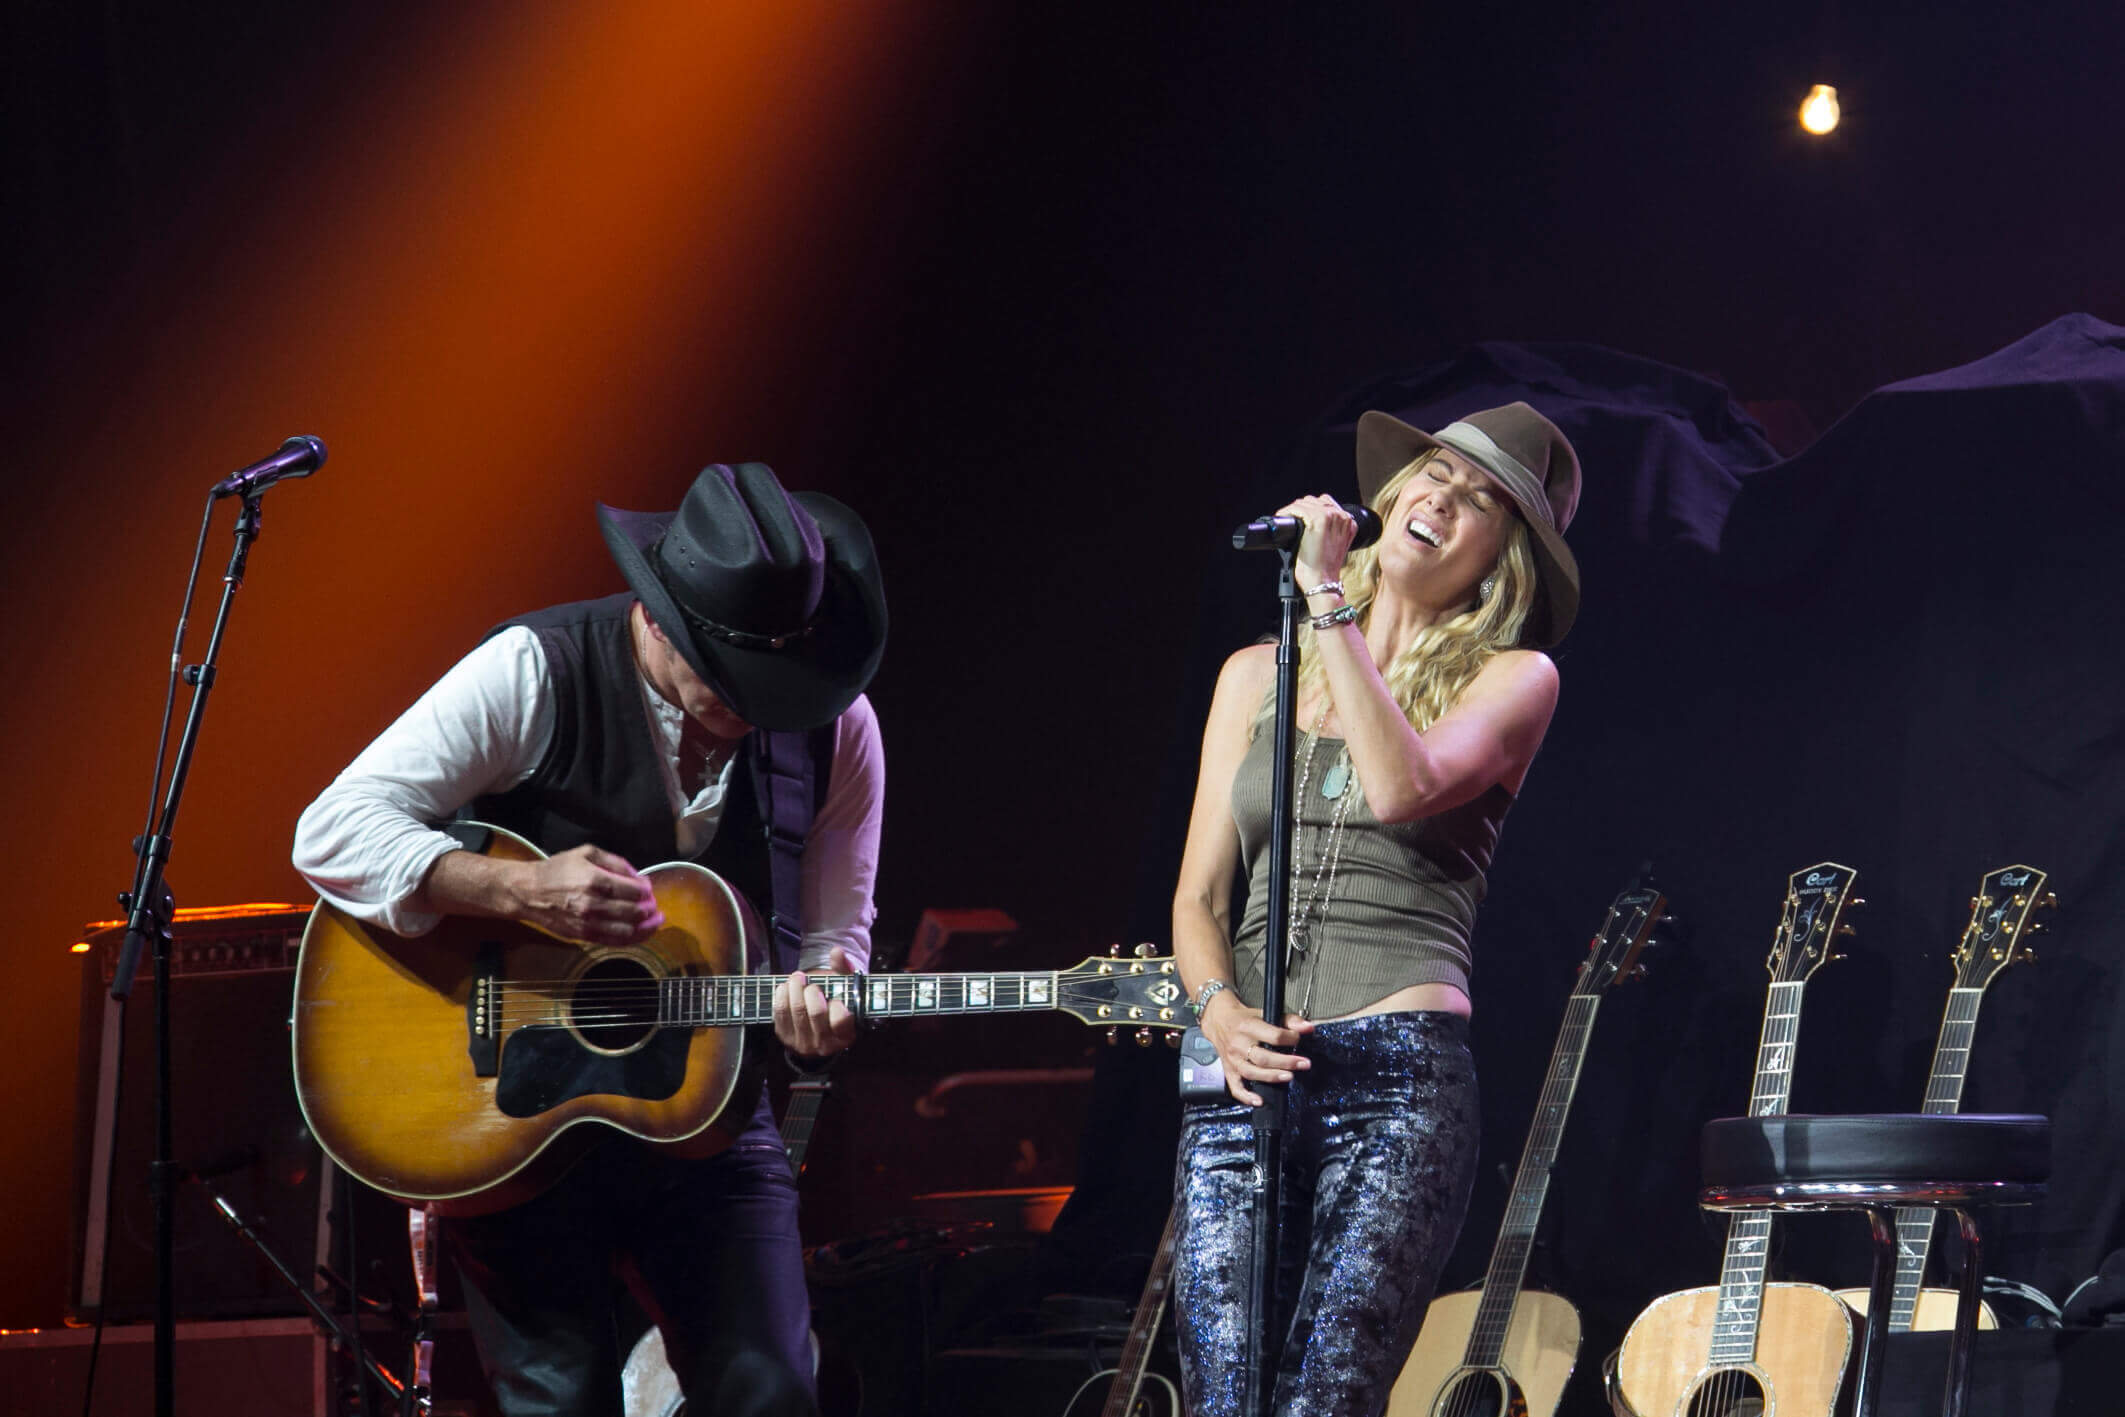 Don Mescall on Stage with Kirsty Bertarelli at the Gstaad Country Festival